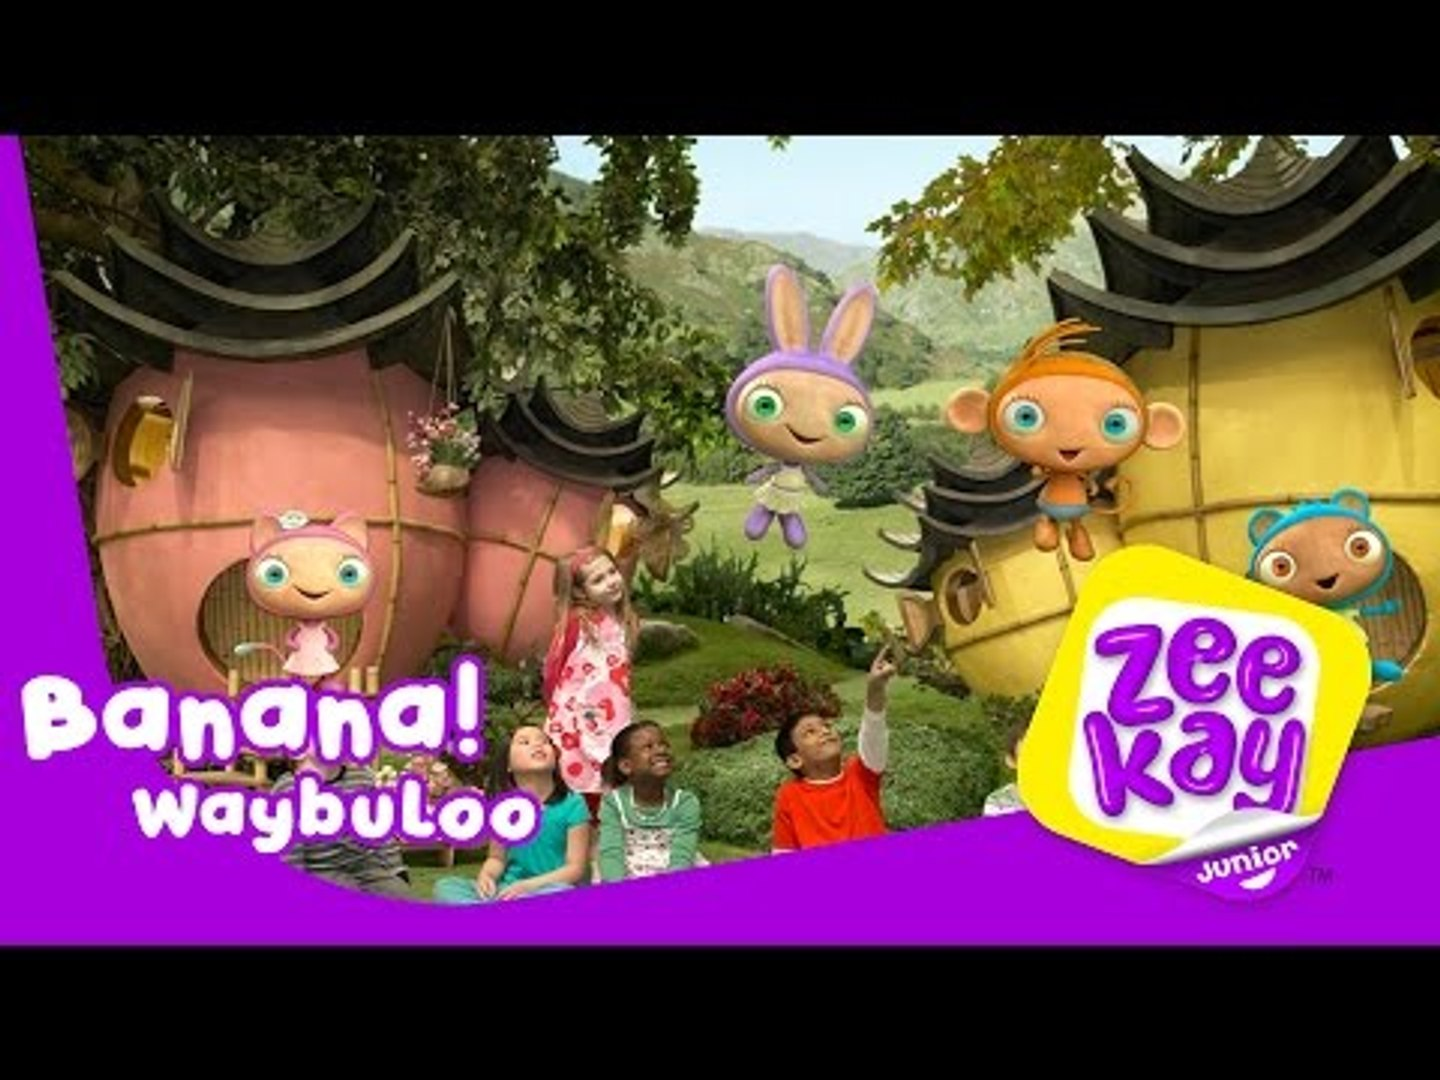 Yojojo Eats Lau Lau S Banana S Waybuloo Zeekay Junior Video Dailymotion